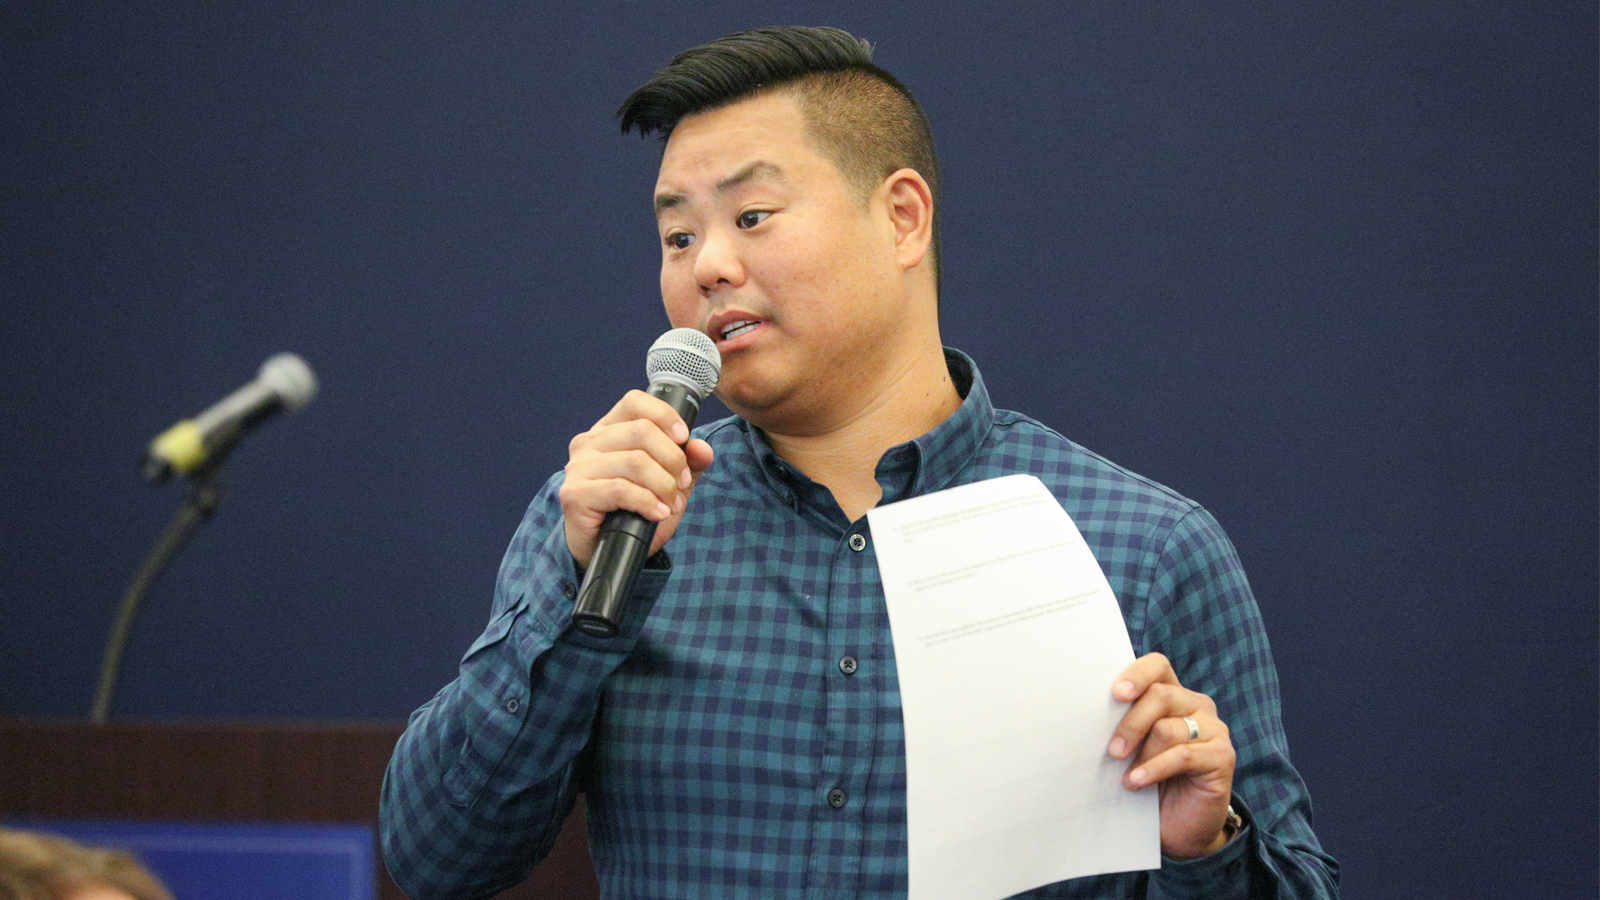 Scott Hwang helps administer the University of Michigan's Program on Intergroup Relations.